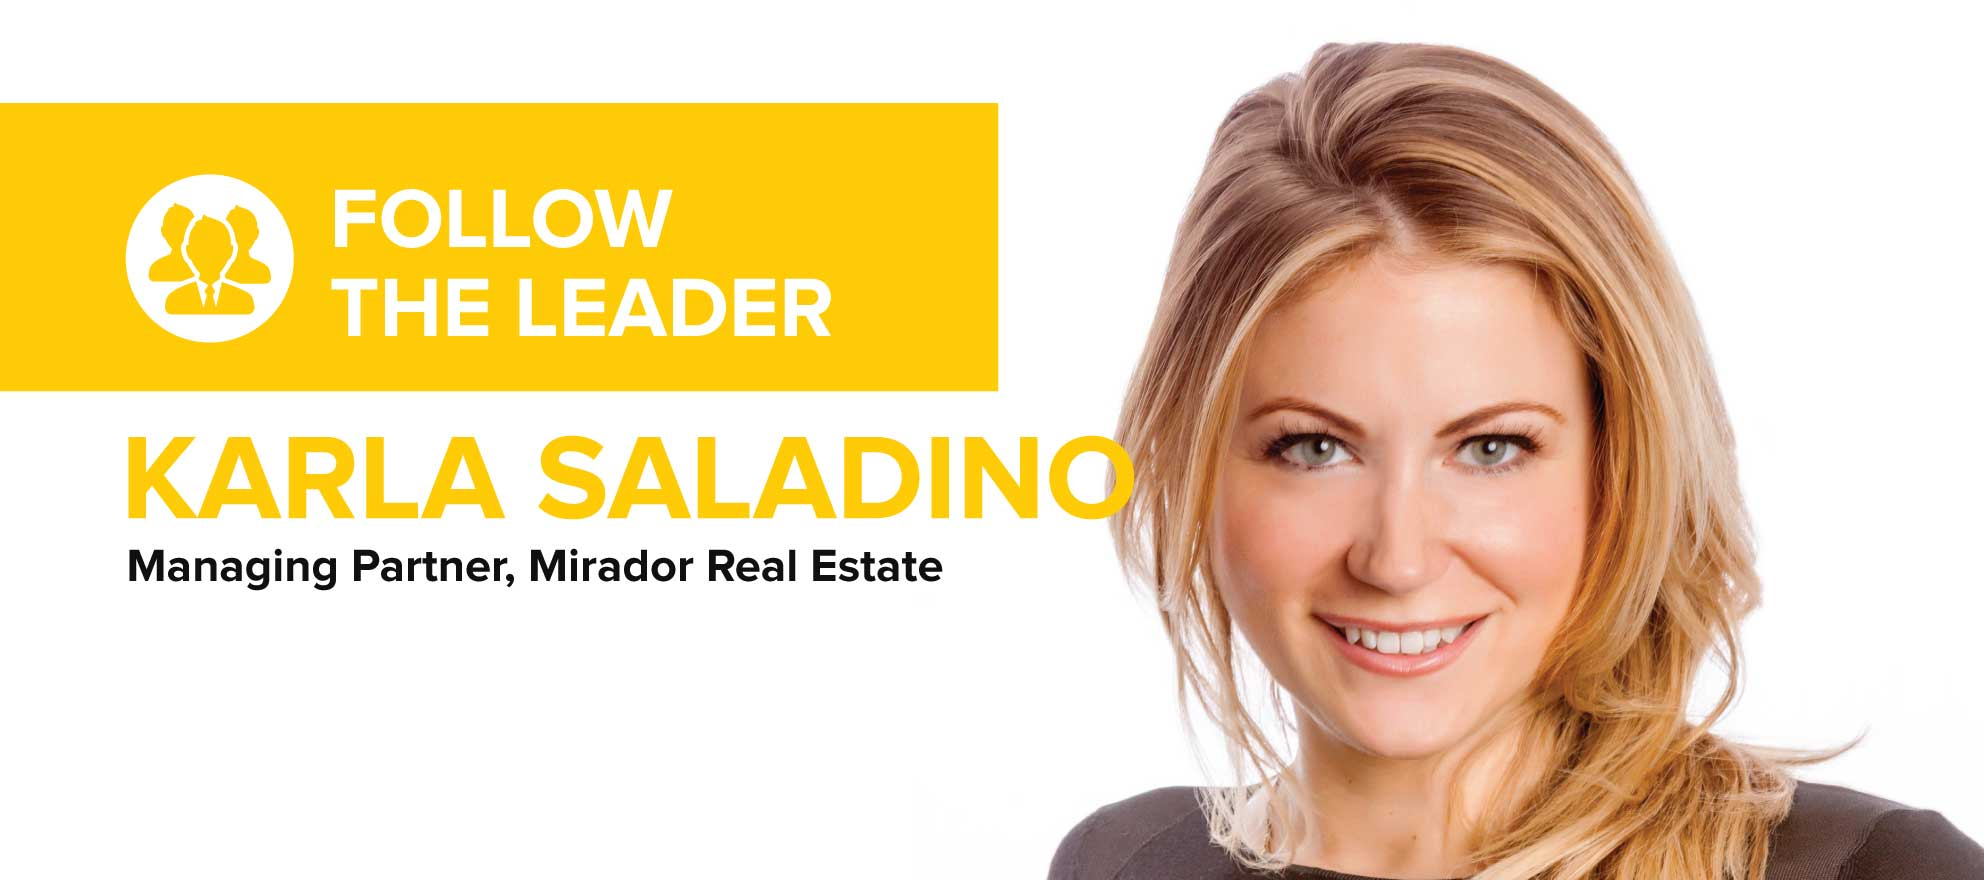 Karla Saladino on why real estate firms waste money paying for leads